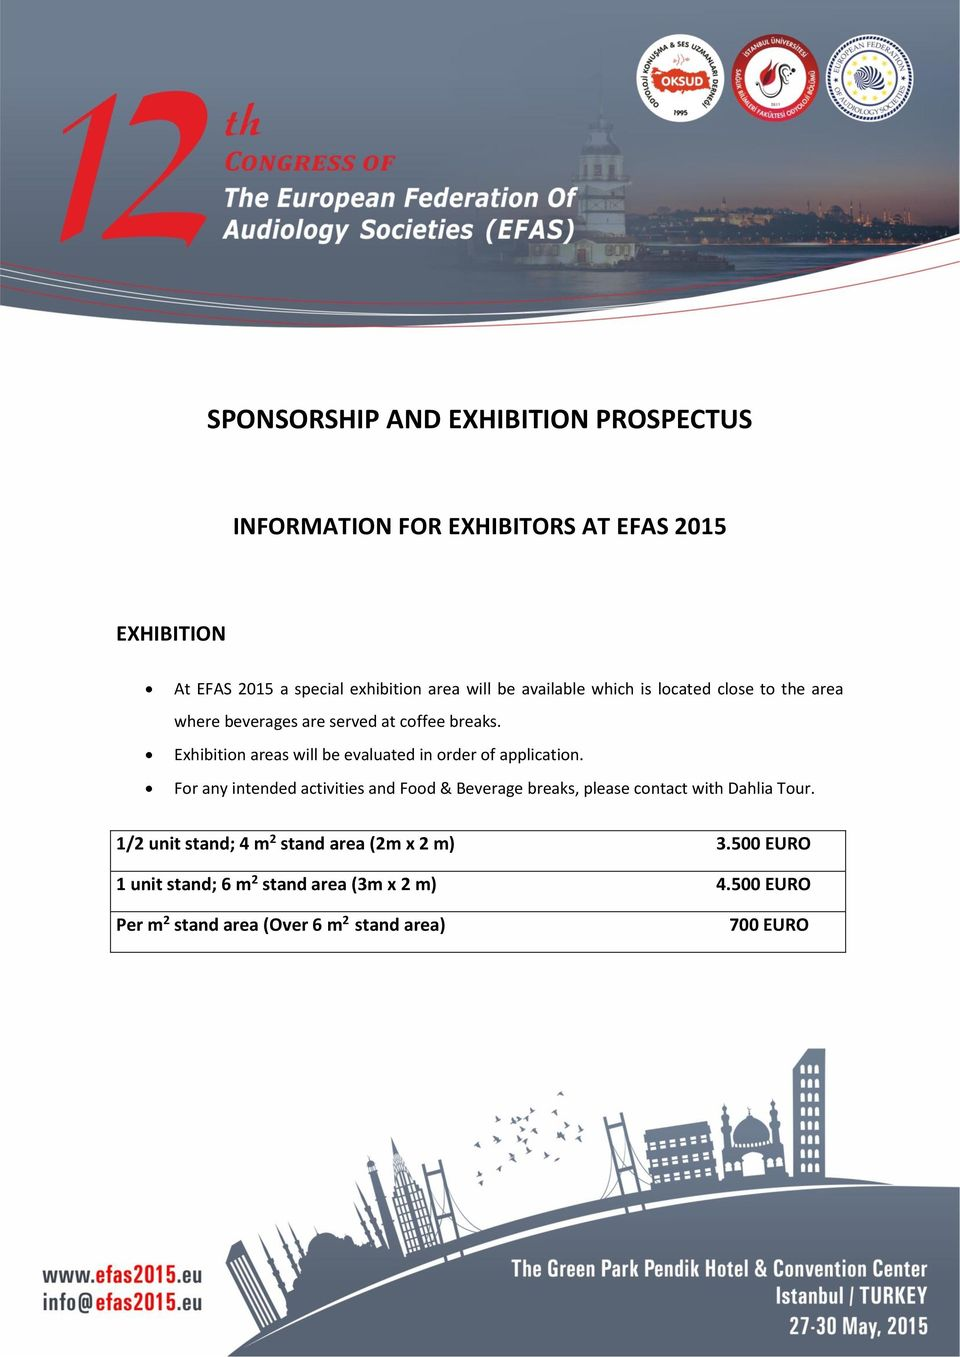 Exhibition areas will be evaluated in order of application.